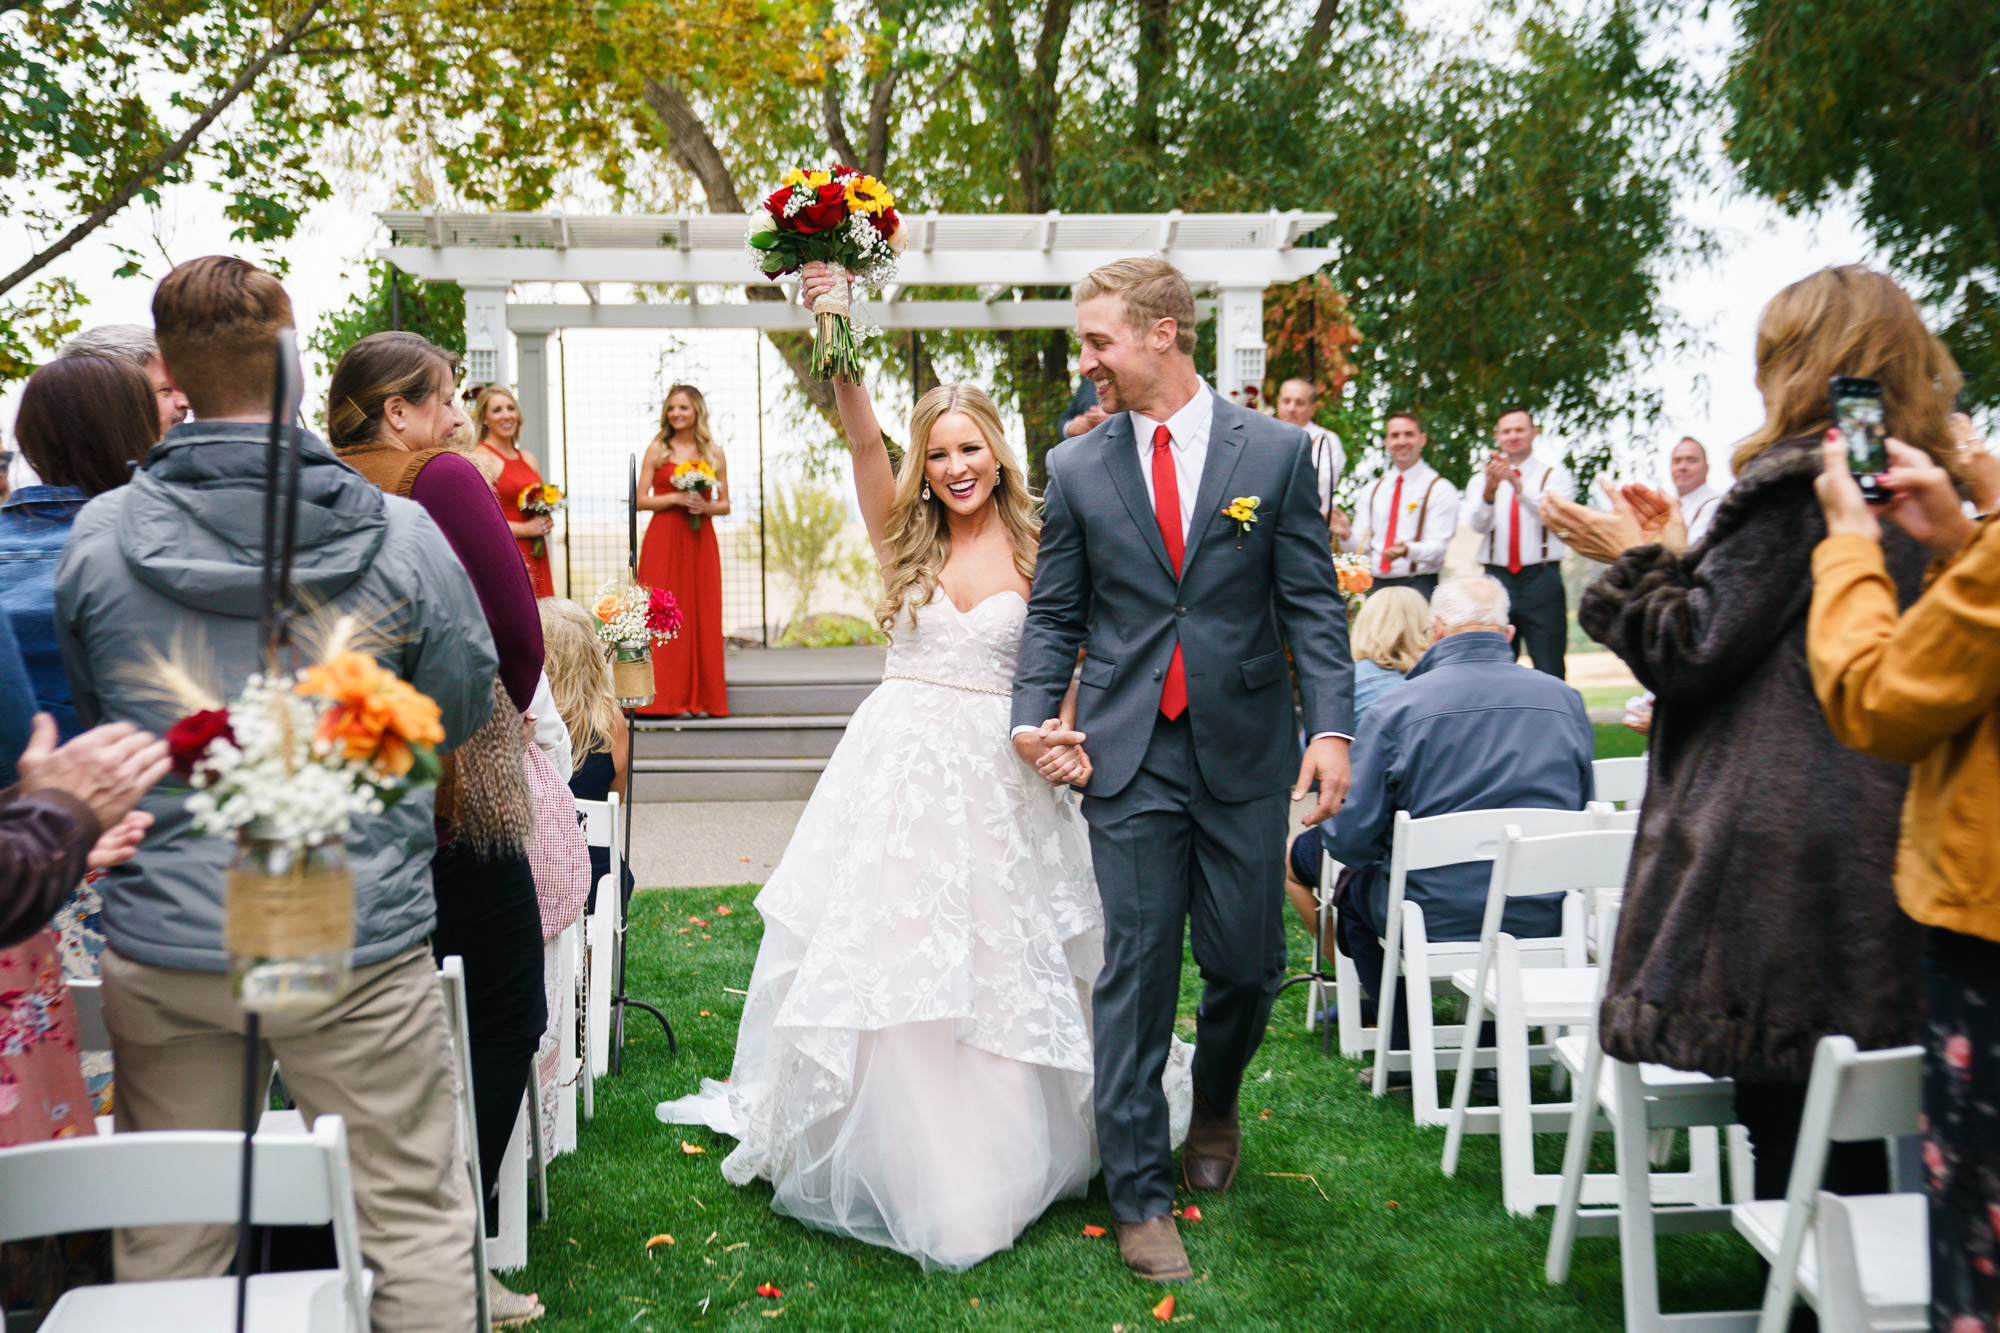 spokane bride and groom with bouquet image